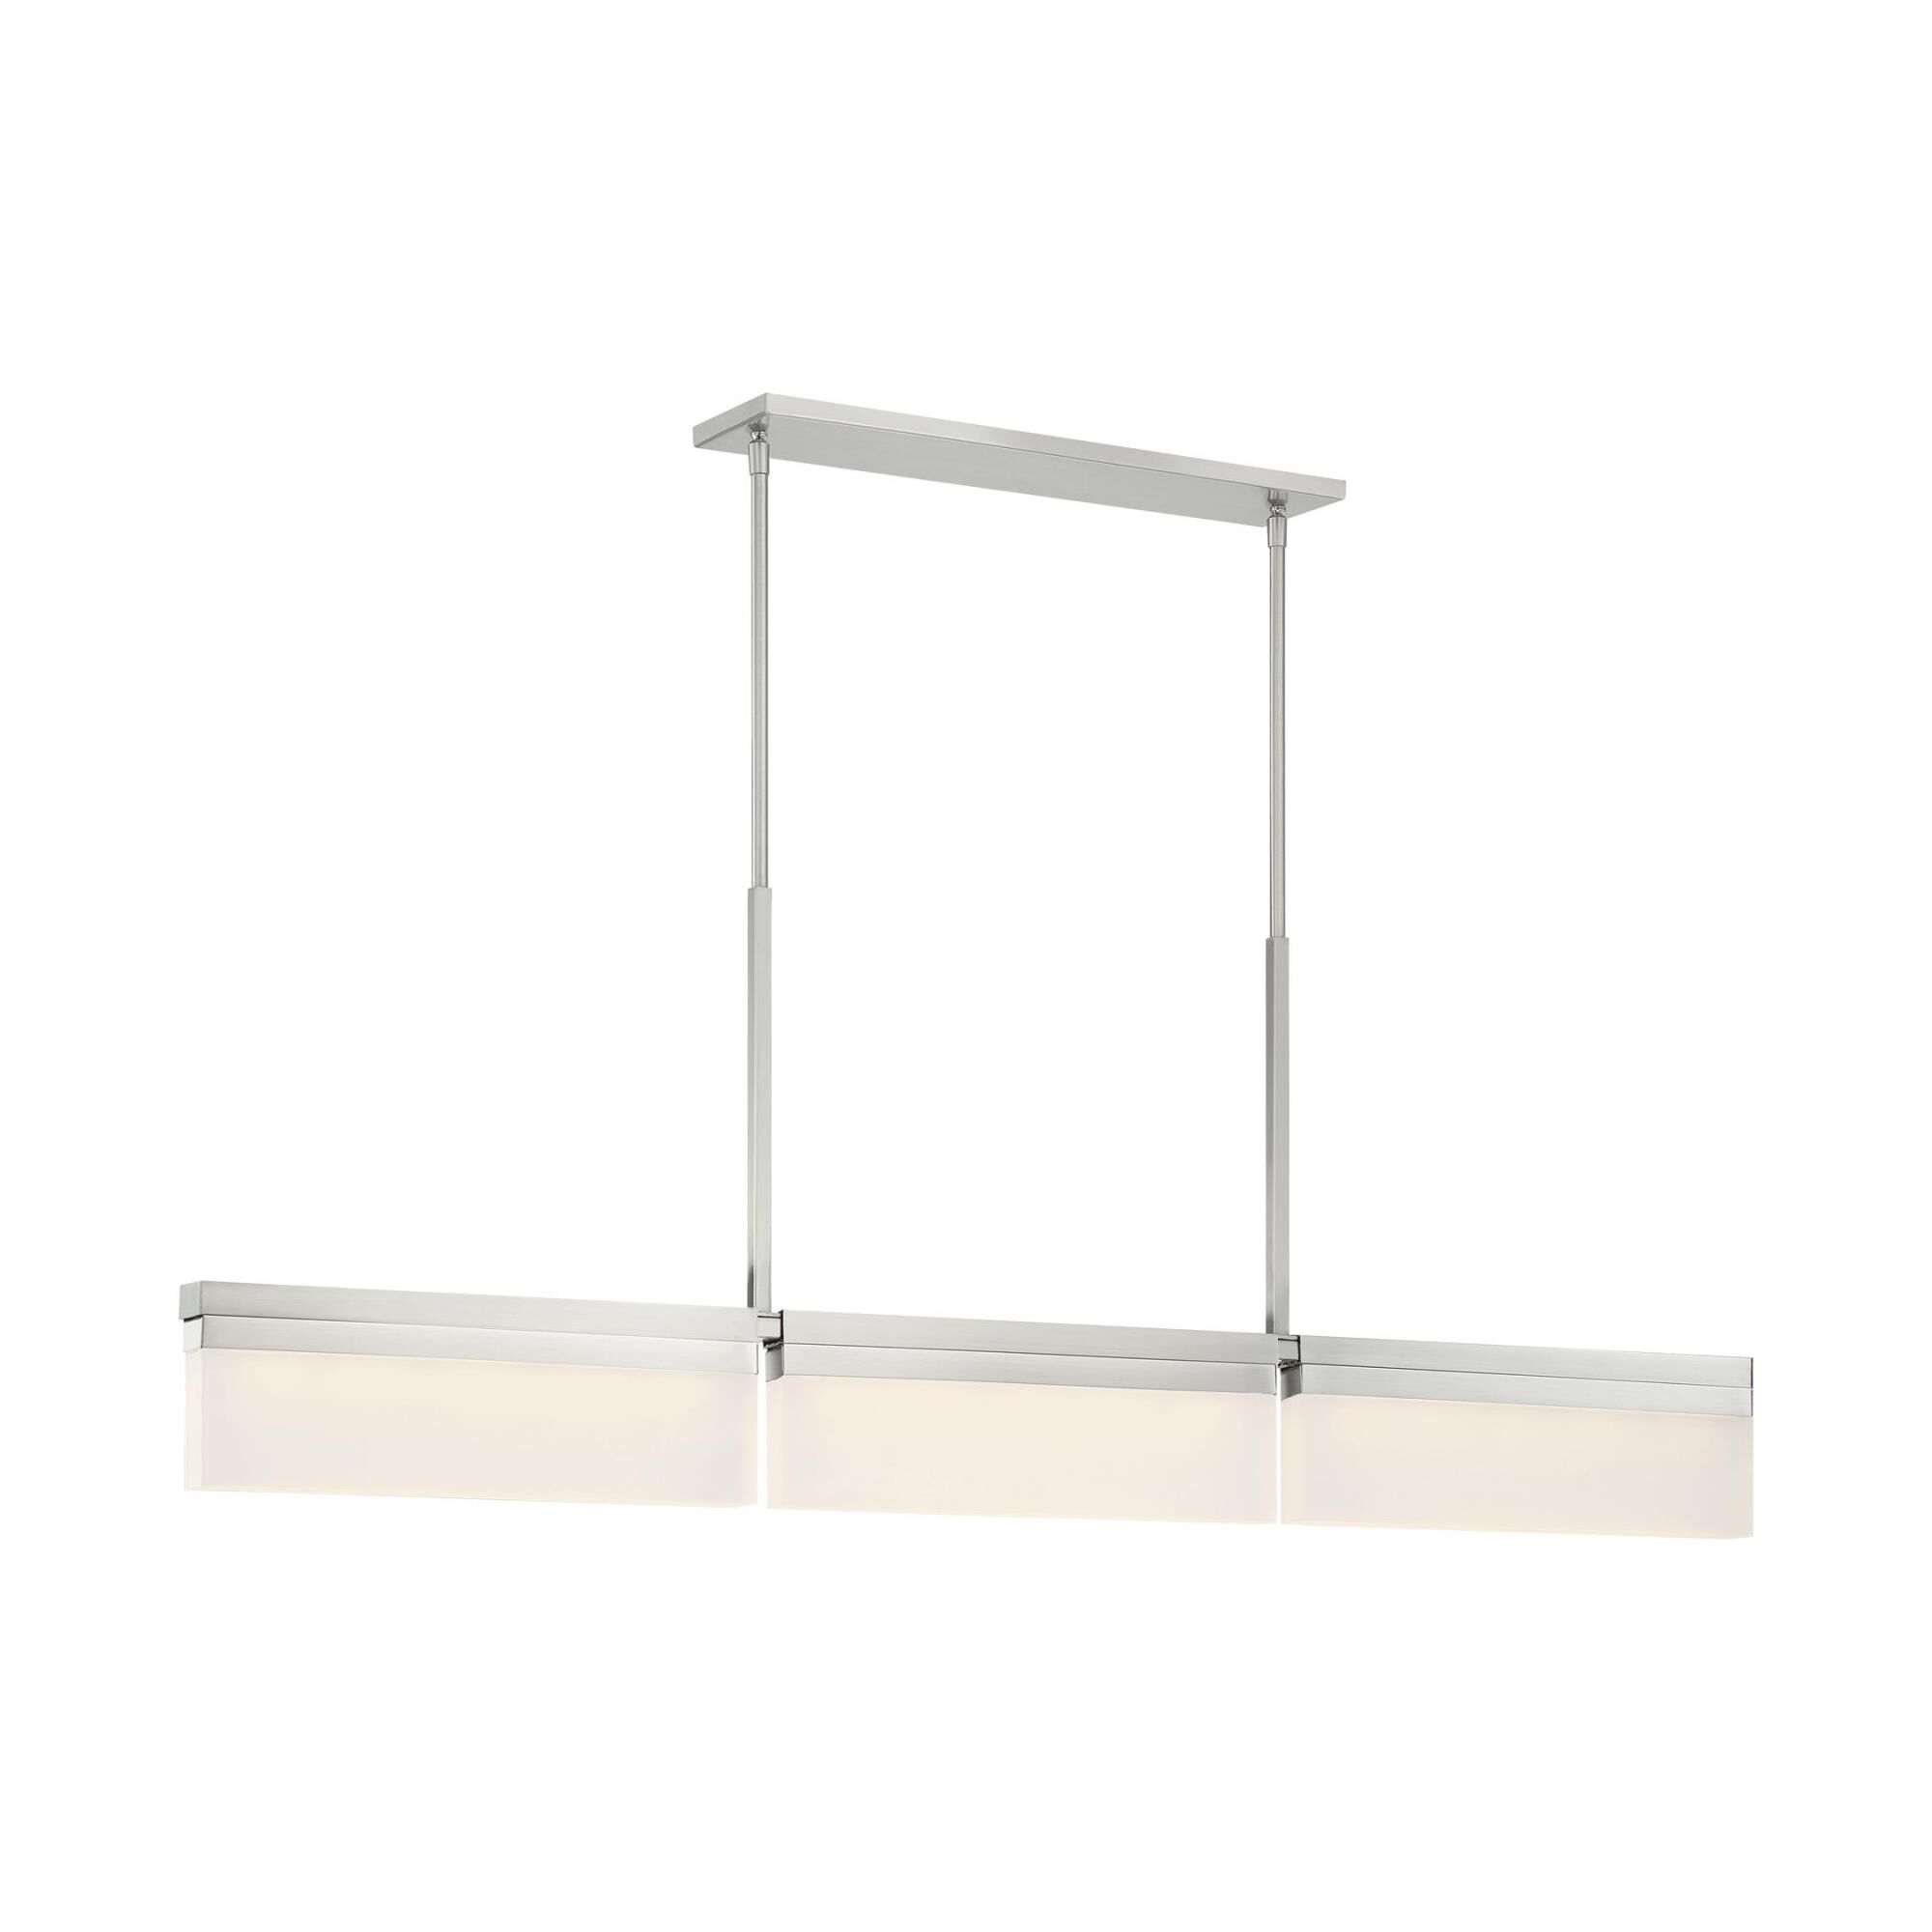 Kovacs Skinny 50 Inch 3 Light Led Linear Suspension Light Skinny - P1724-084-l - Transitional